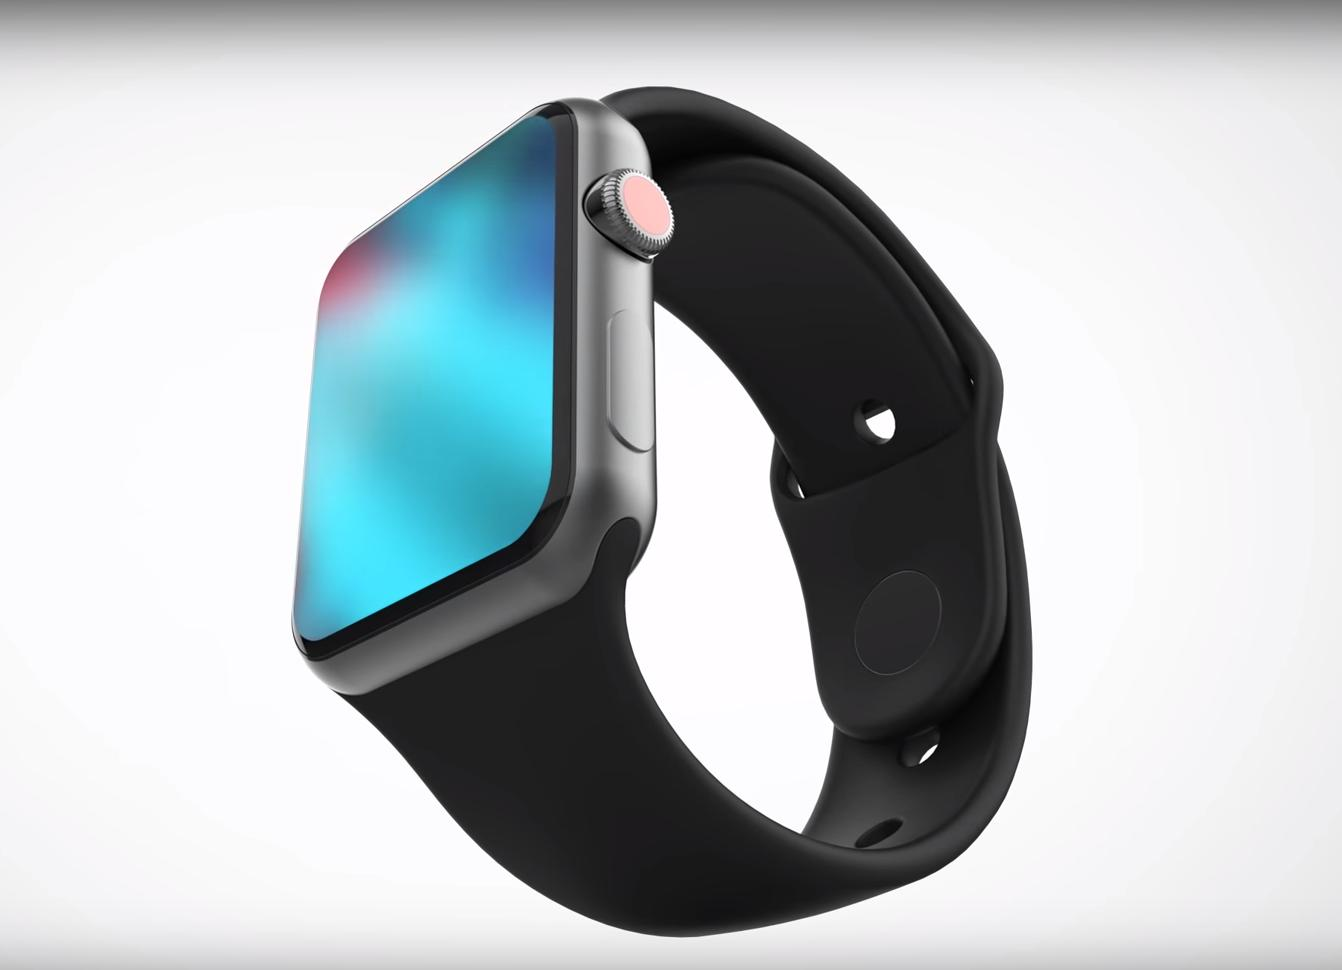 Apple Watch is a line of smartwatches designed developed and marketed by Apple Inc It incorporates fitness tracking and healthoriented capabilities with